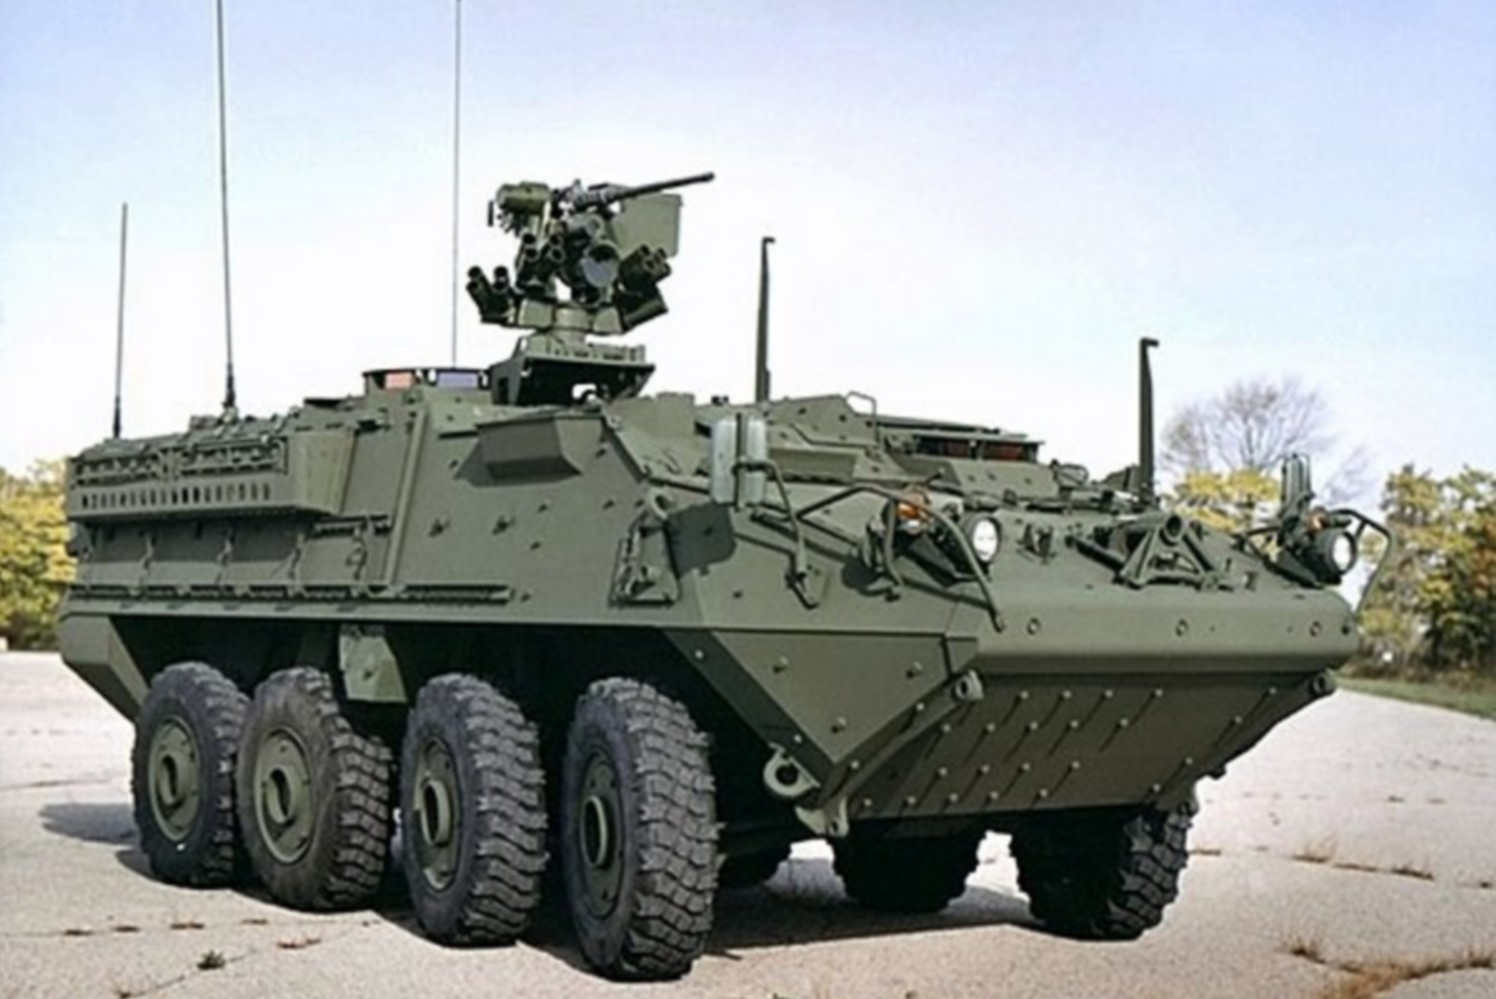 An M1126 Stryker armoured vehicle.